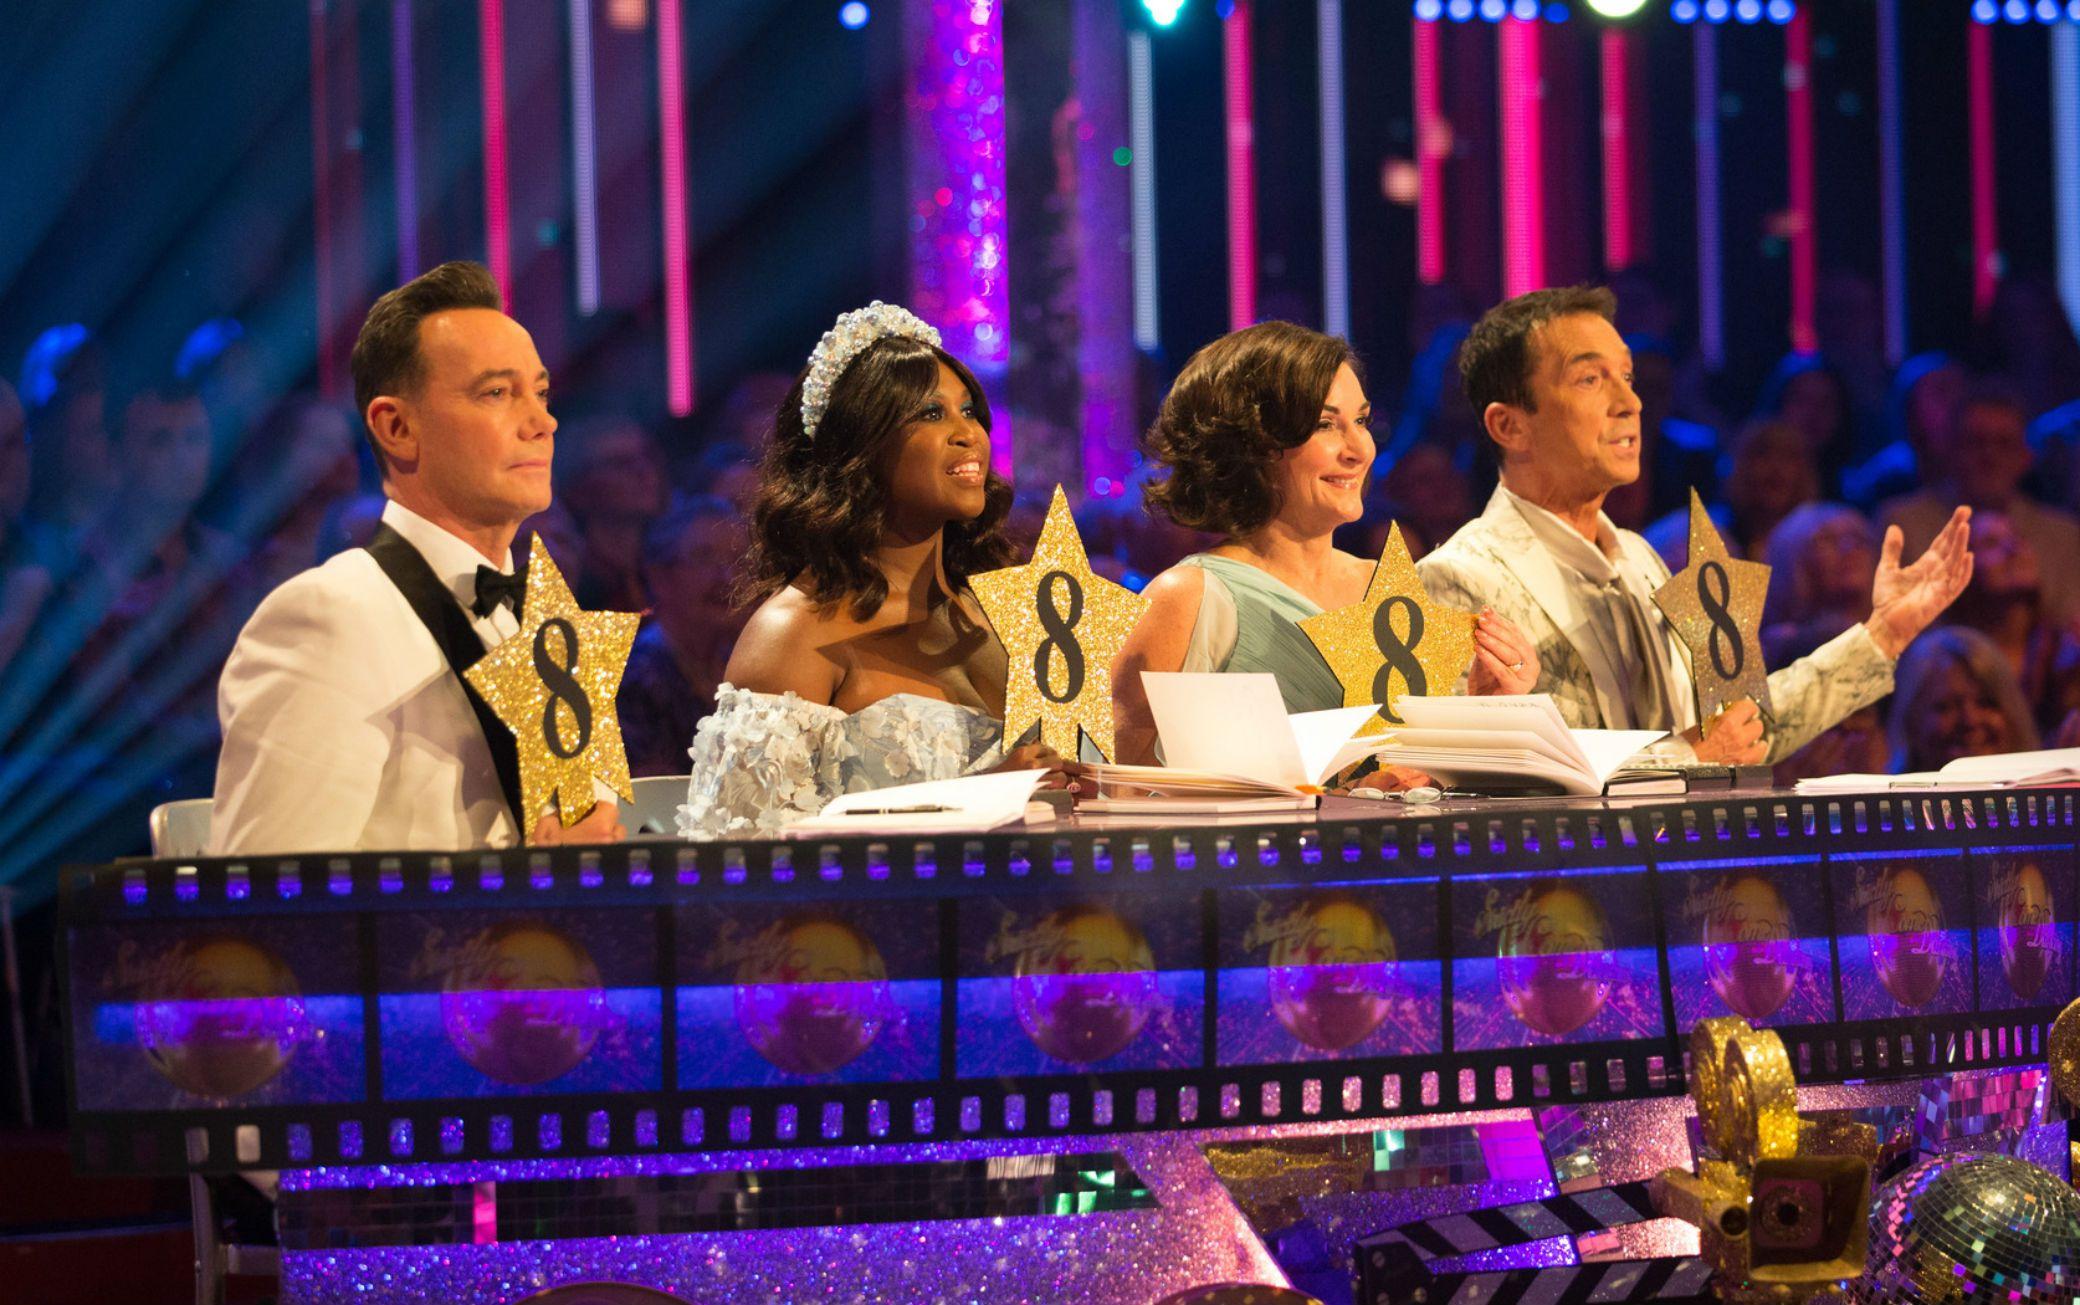 Strictly Come Dancing 2019 week four catch-up: All this week's dances and scores